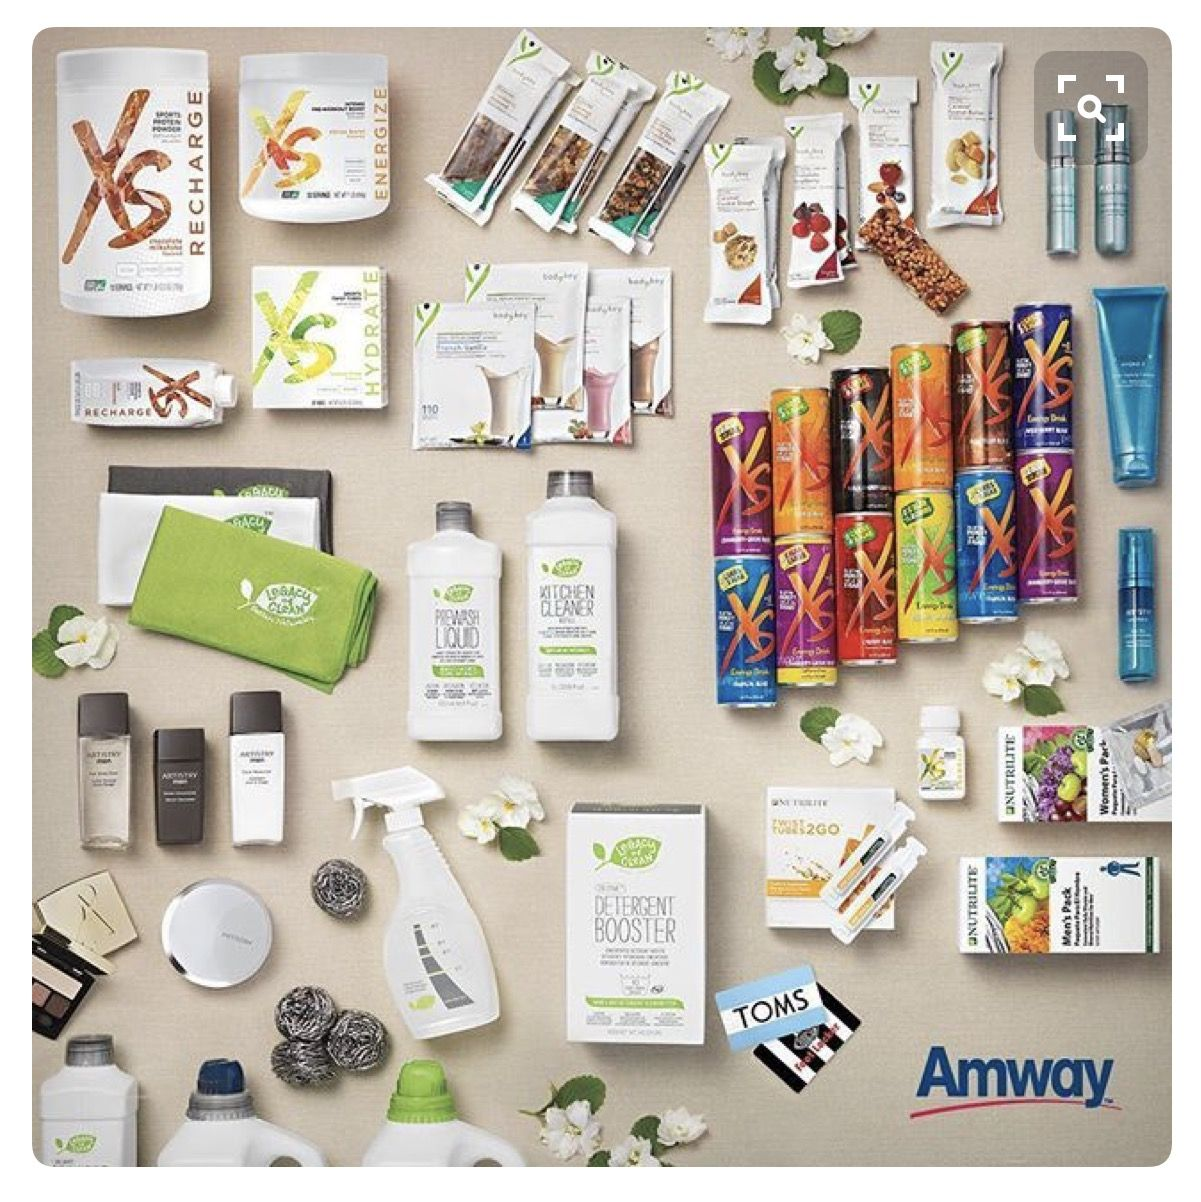 Buy Amway Products Here 👉🏻 www amway com/jorgensen   General